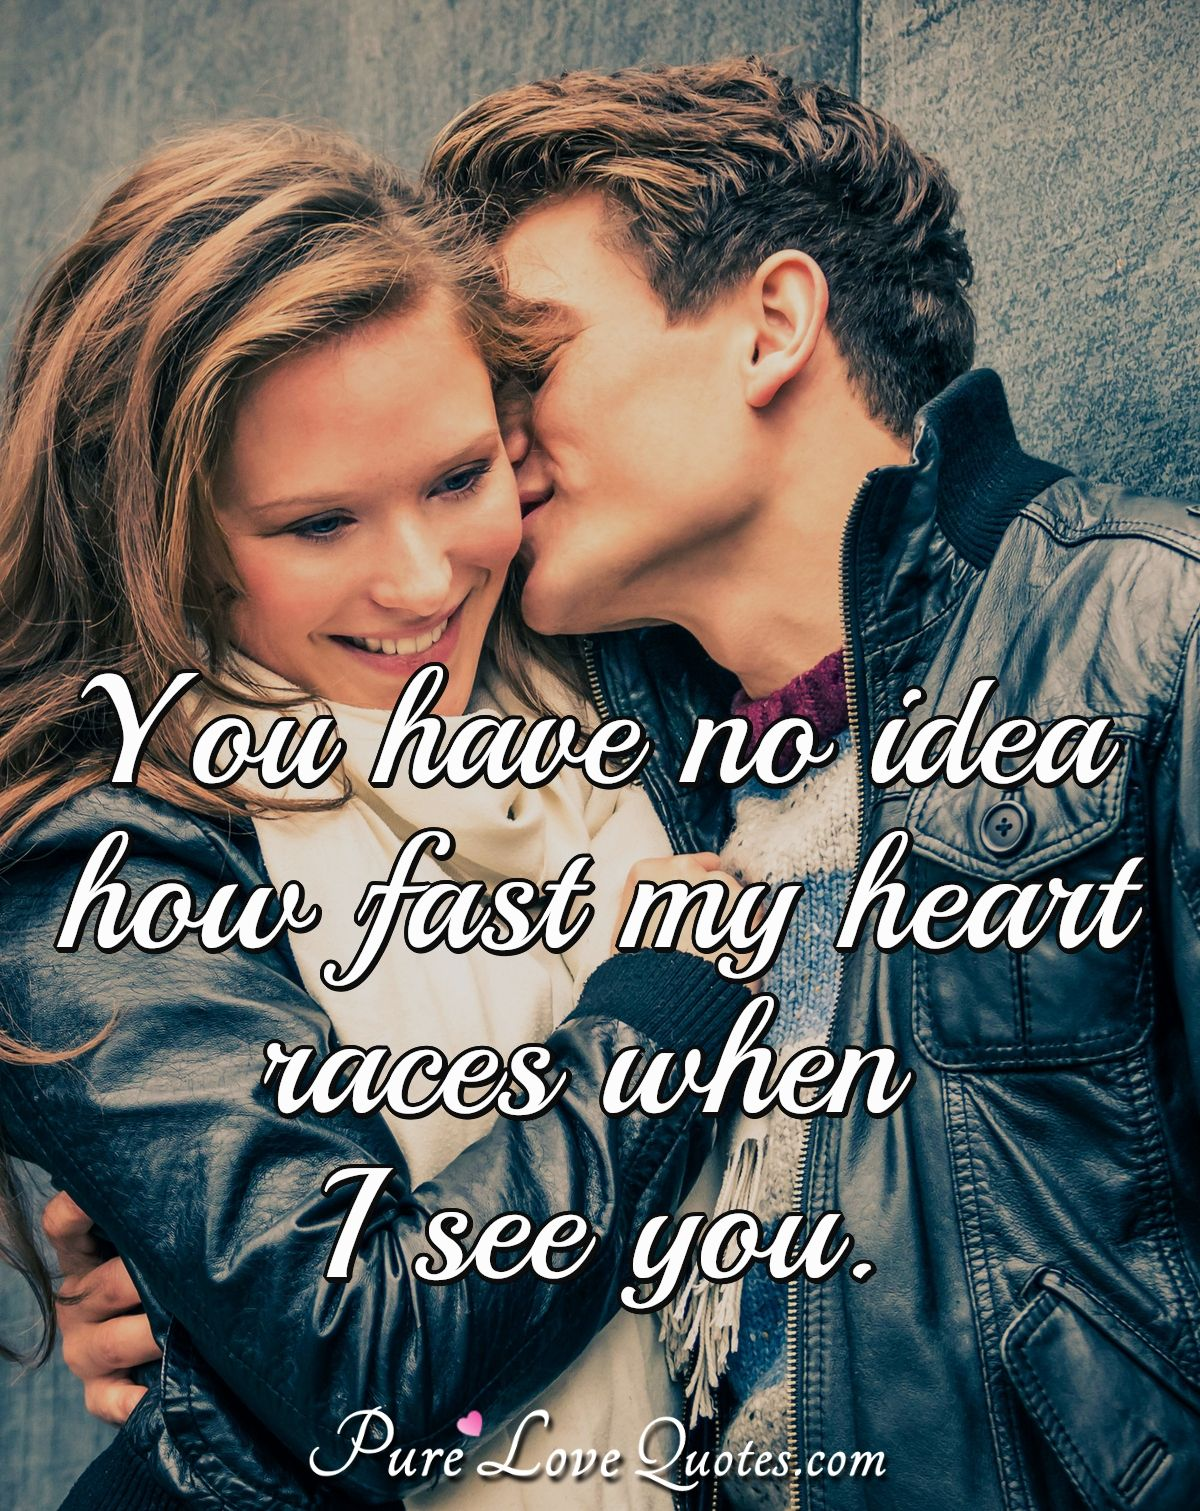 You have no idea how fast my heart races when I see you. - Anonymous